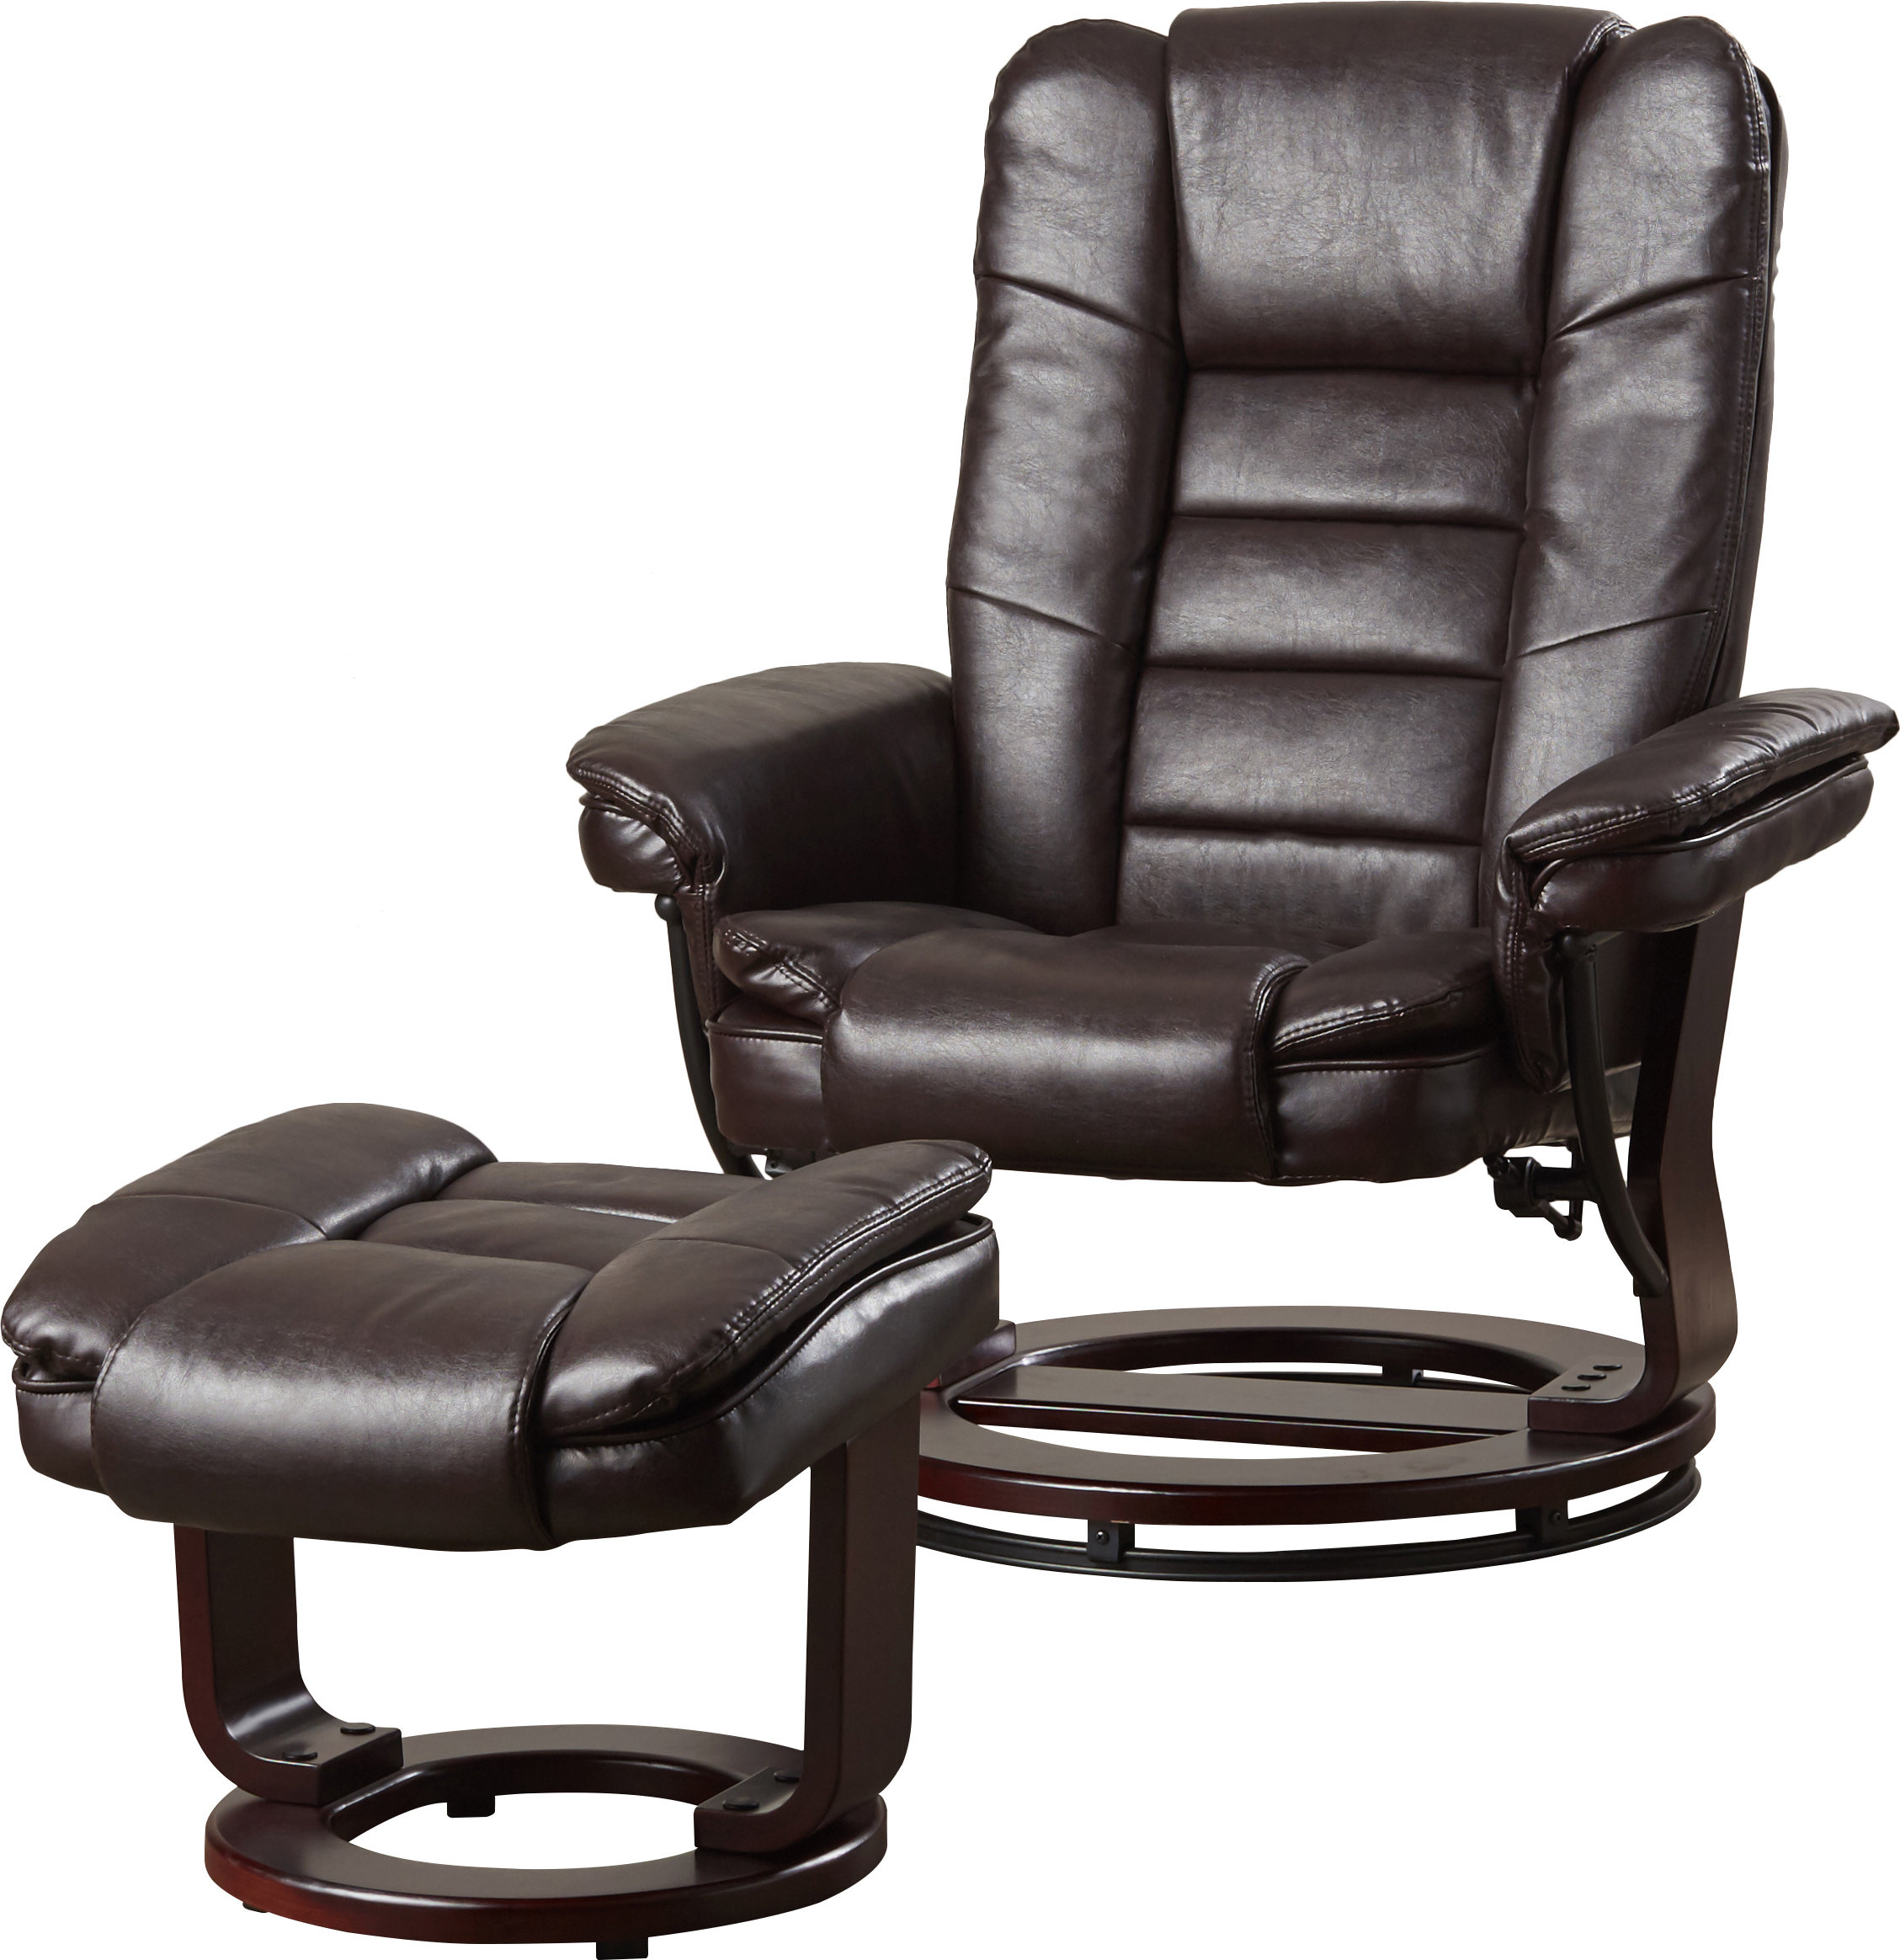 Alcott Hill Hammersdale Manual Swivel Recliner With Ottoman Within Dale Iii Polyurethane Swivel Glider Recliners (View 14 of 25)